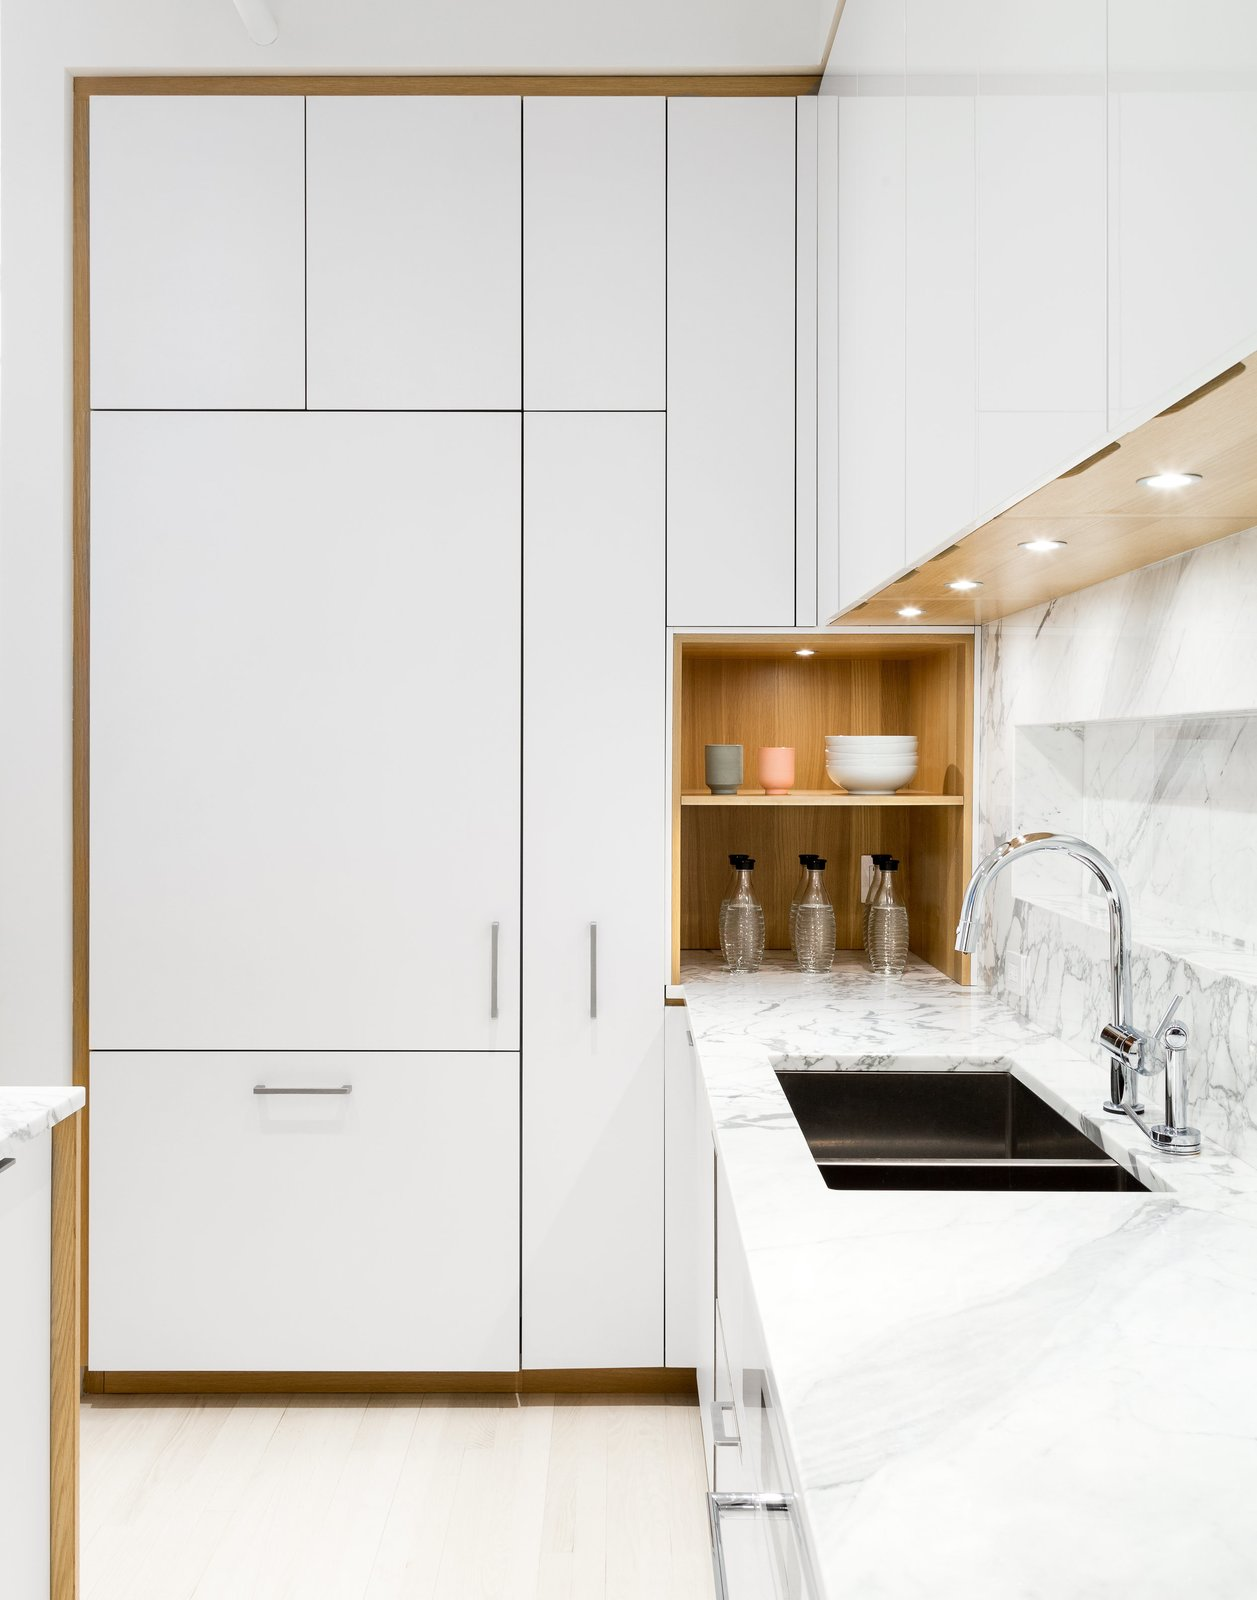 Kitchen, White Cabinet, Undermount Sink, Marble Counter, Marble Backsplashe, Accent Lighting, Light Hardwood Floor, Recessed Lighting, and Refrigerator The kitchen has been designed in collaboration with Henrybuilt. The laminate cabinets are paired with a marble countertop by SMC Stone.    Photo 24 of 30 in These 30 White Kitchens Are Anything But Ordinary from This 60-Square-Foot Structure Divides and Conquers in a Manhattan Renovation